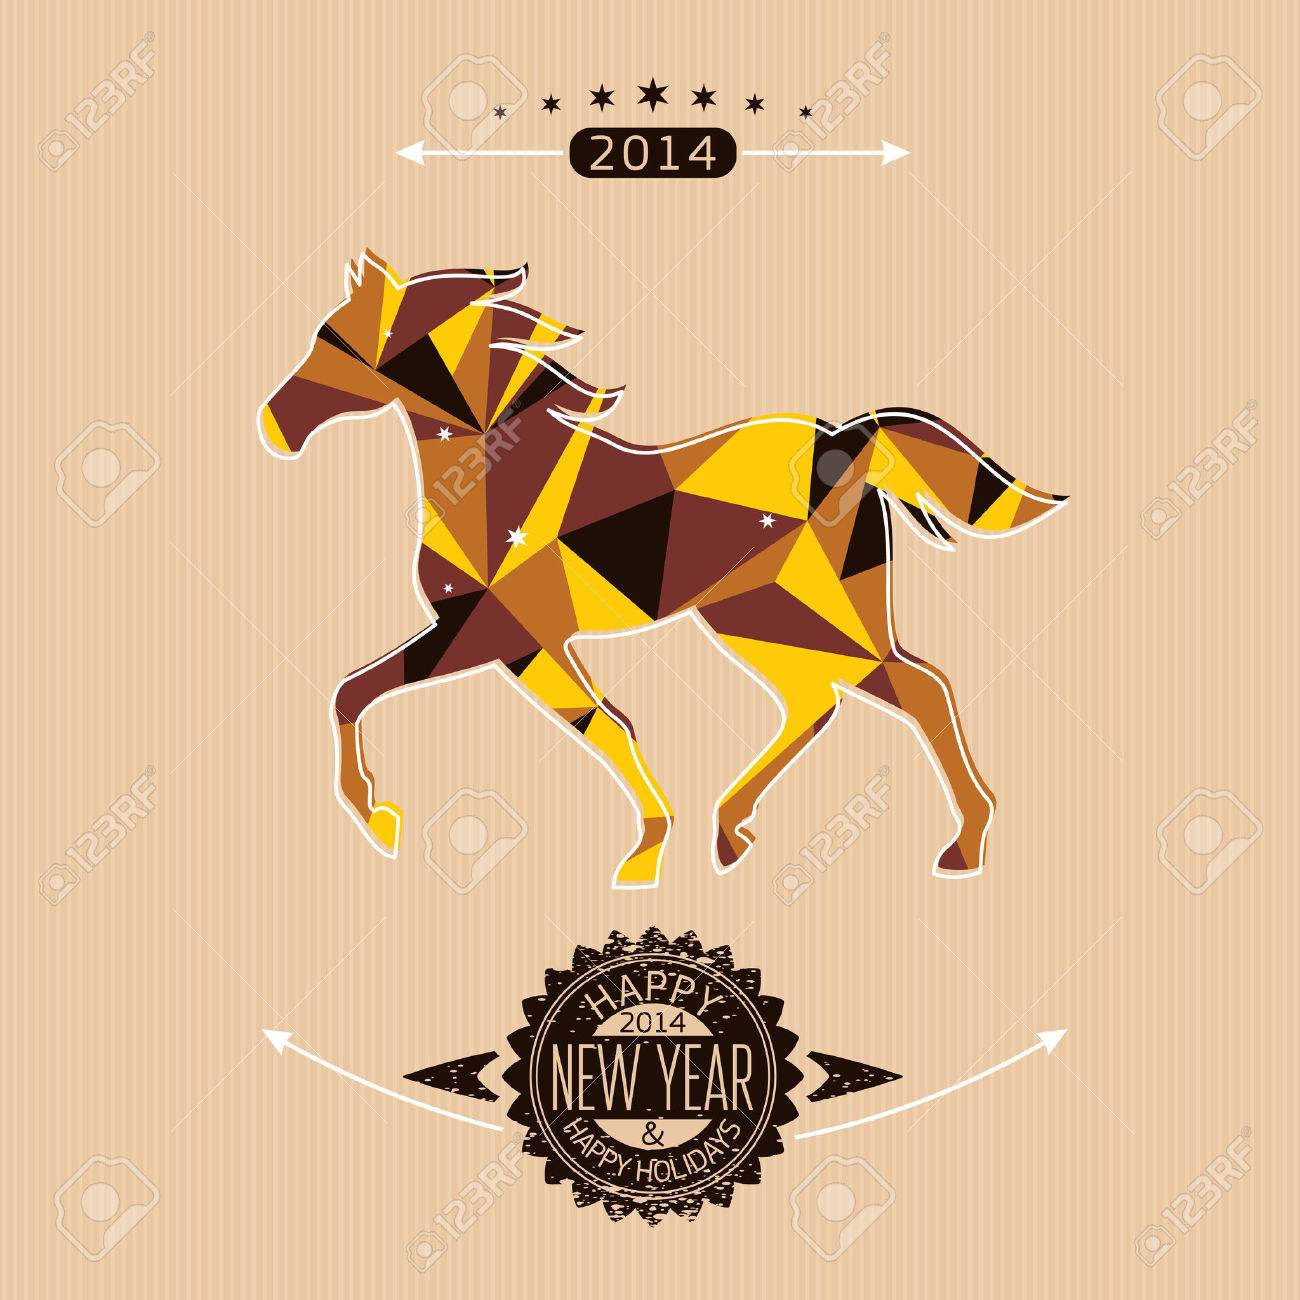 New year card with stylized geometric horse vector illustration Stock Vector - 23063709